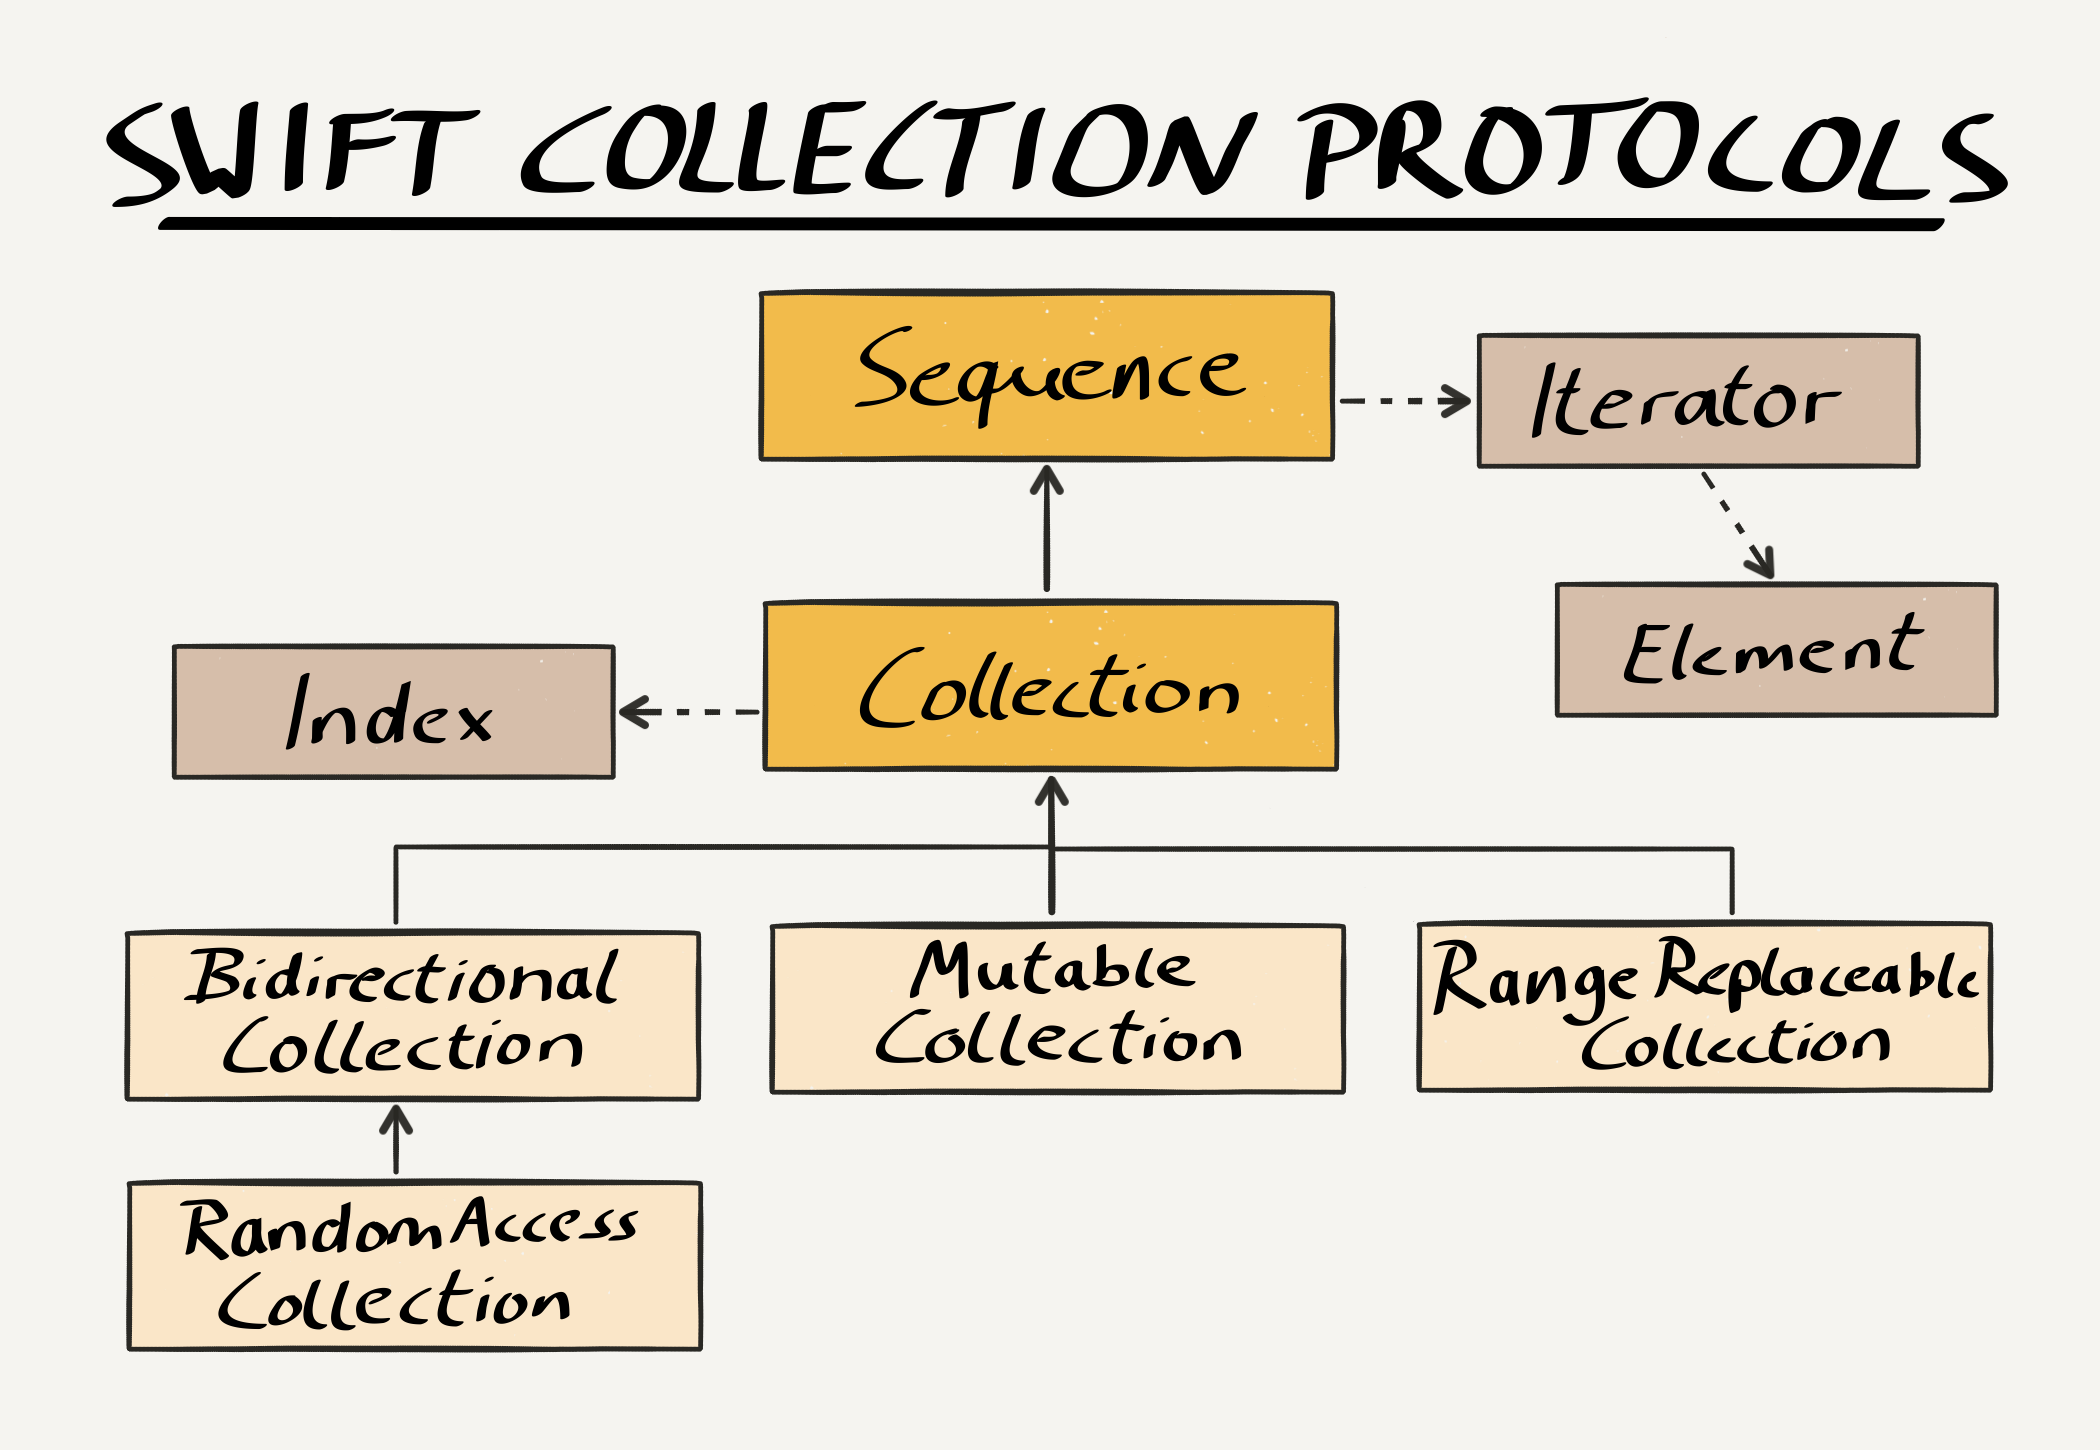 Swift Collection Protocol Hierarchy